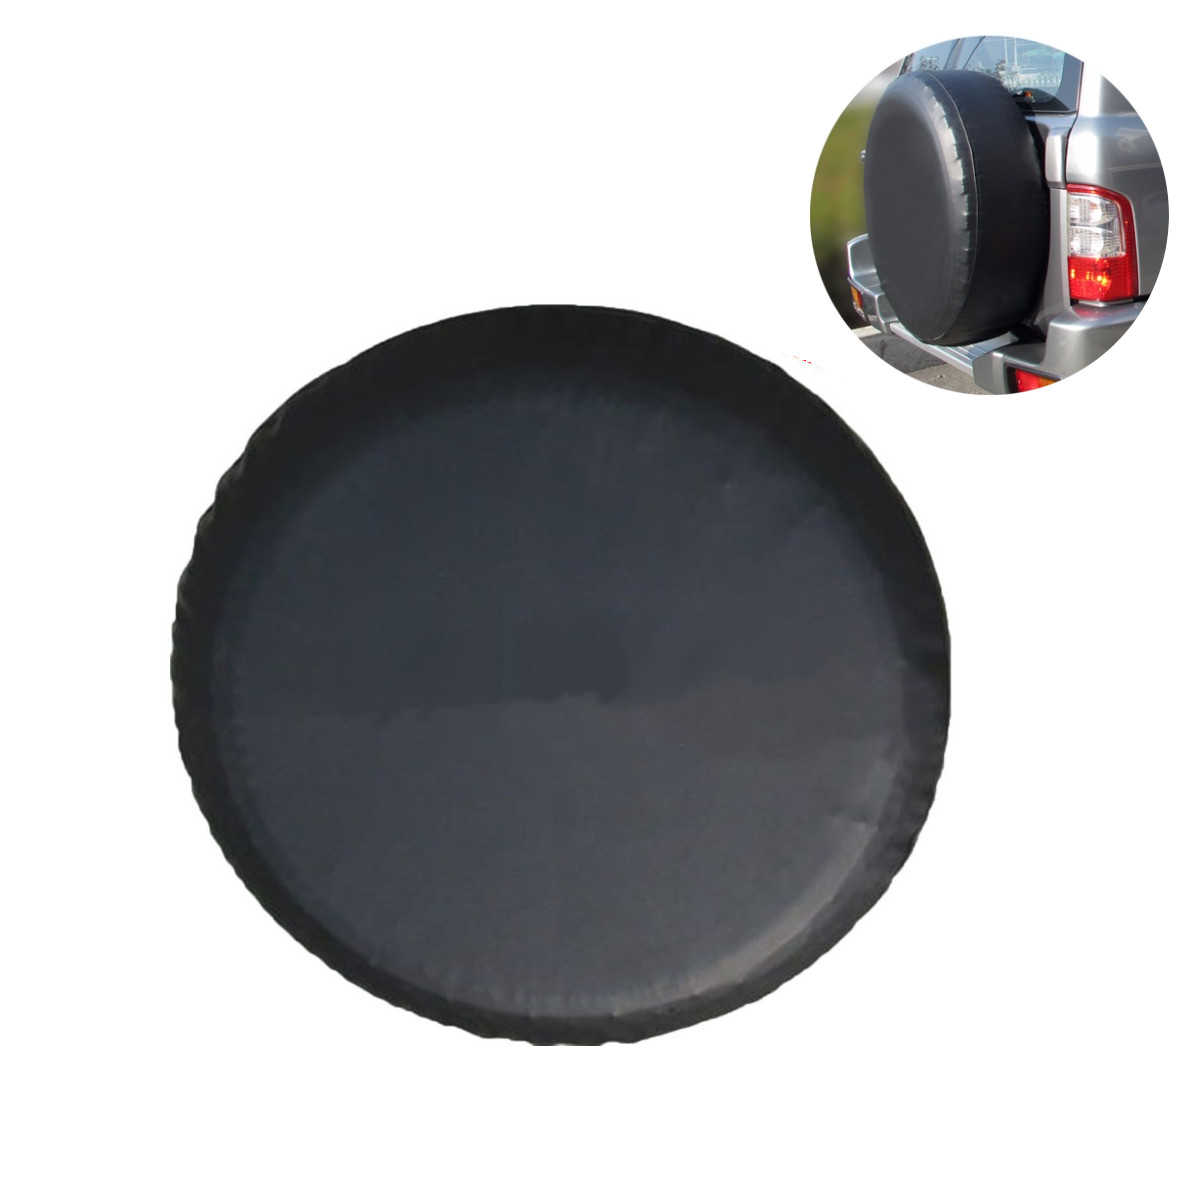 15 Inch Black PVC Leather Spare Wheel Tire Cover Waterproof Size M for Jeep/ Wrangler/ SUV Car